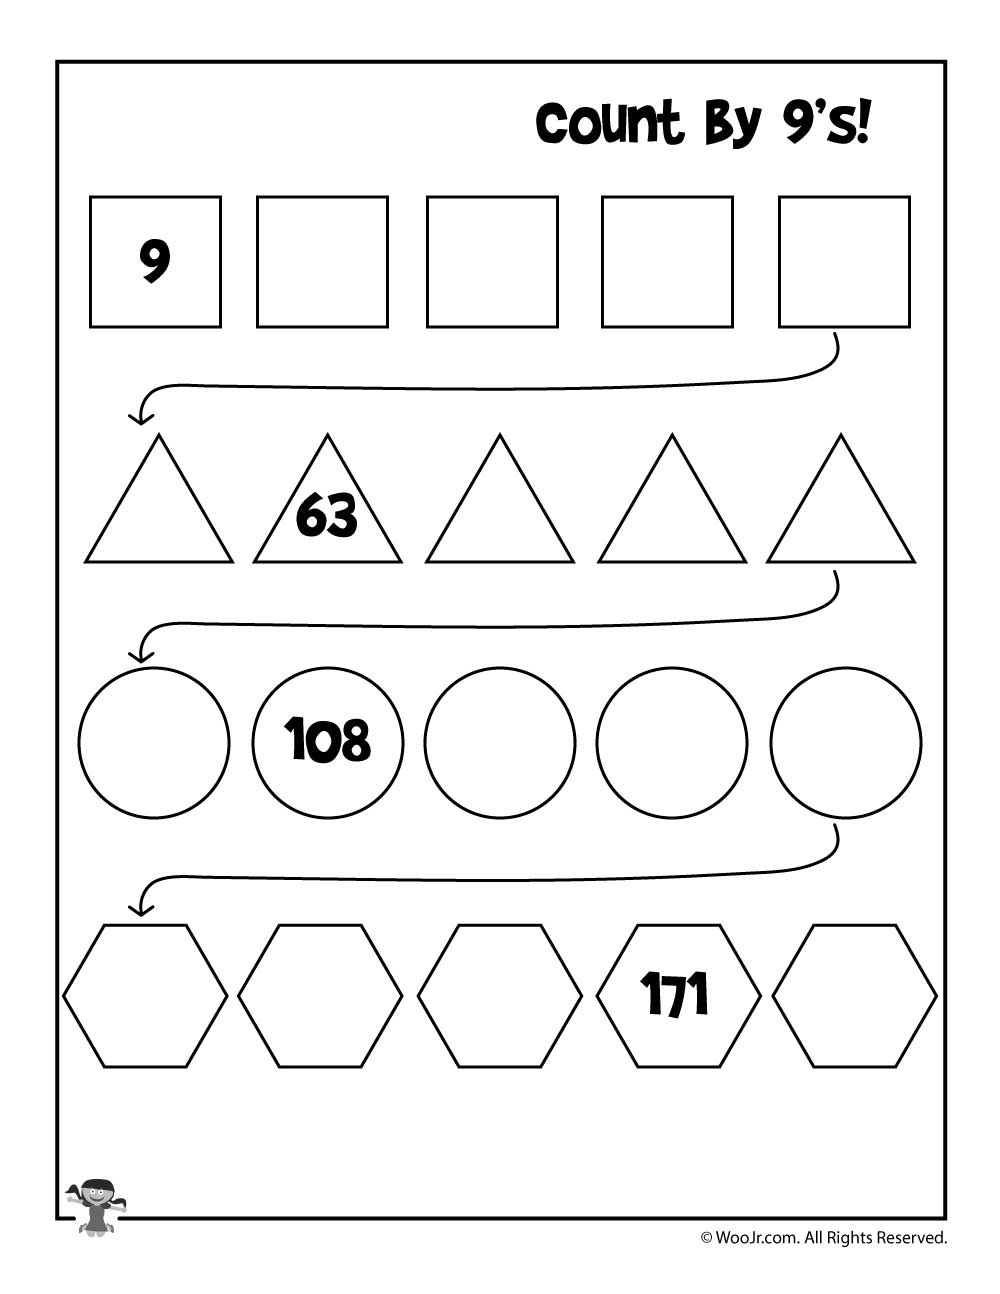 simple skip counting worksheets to print - Kids Activities Print